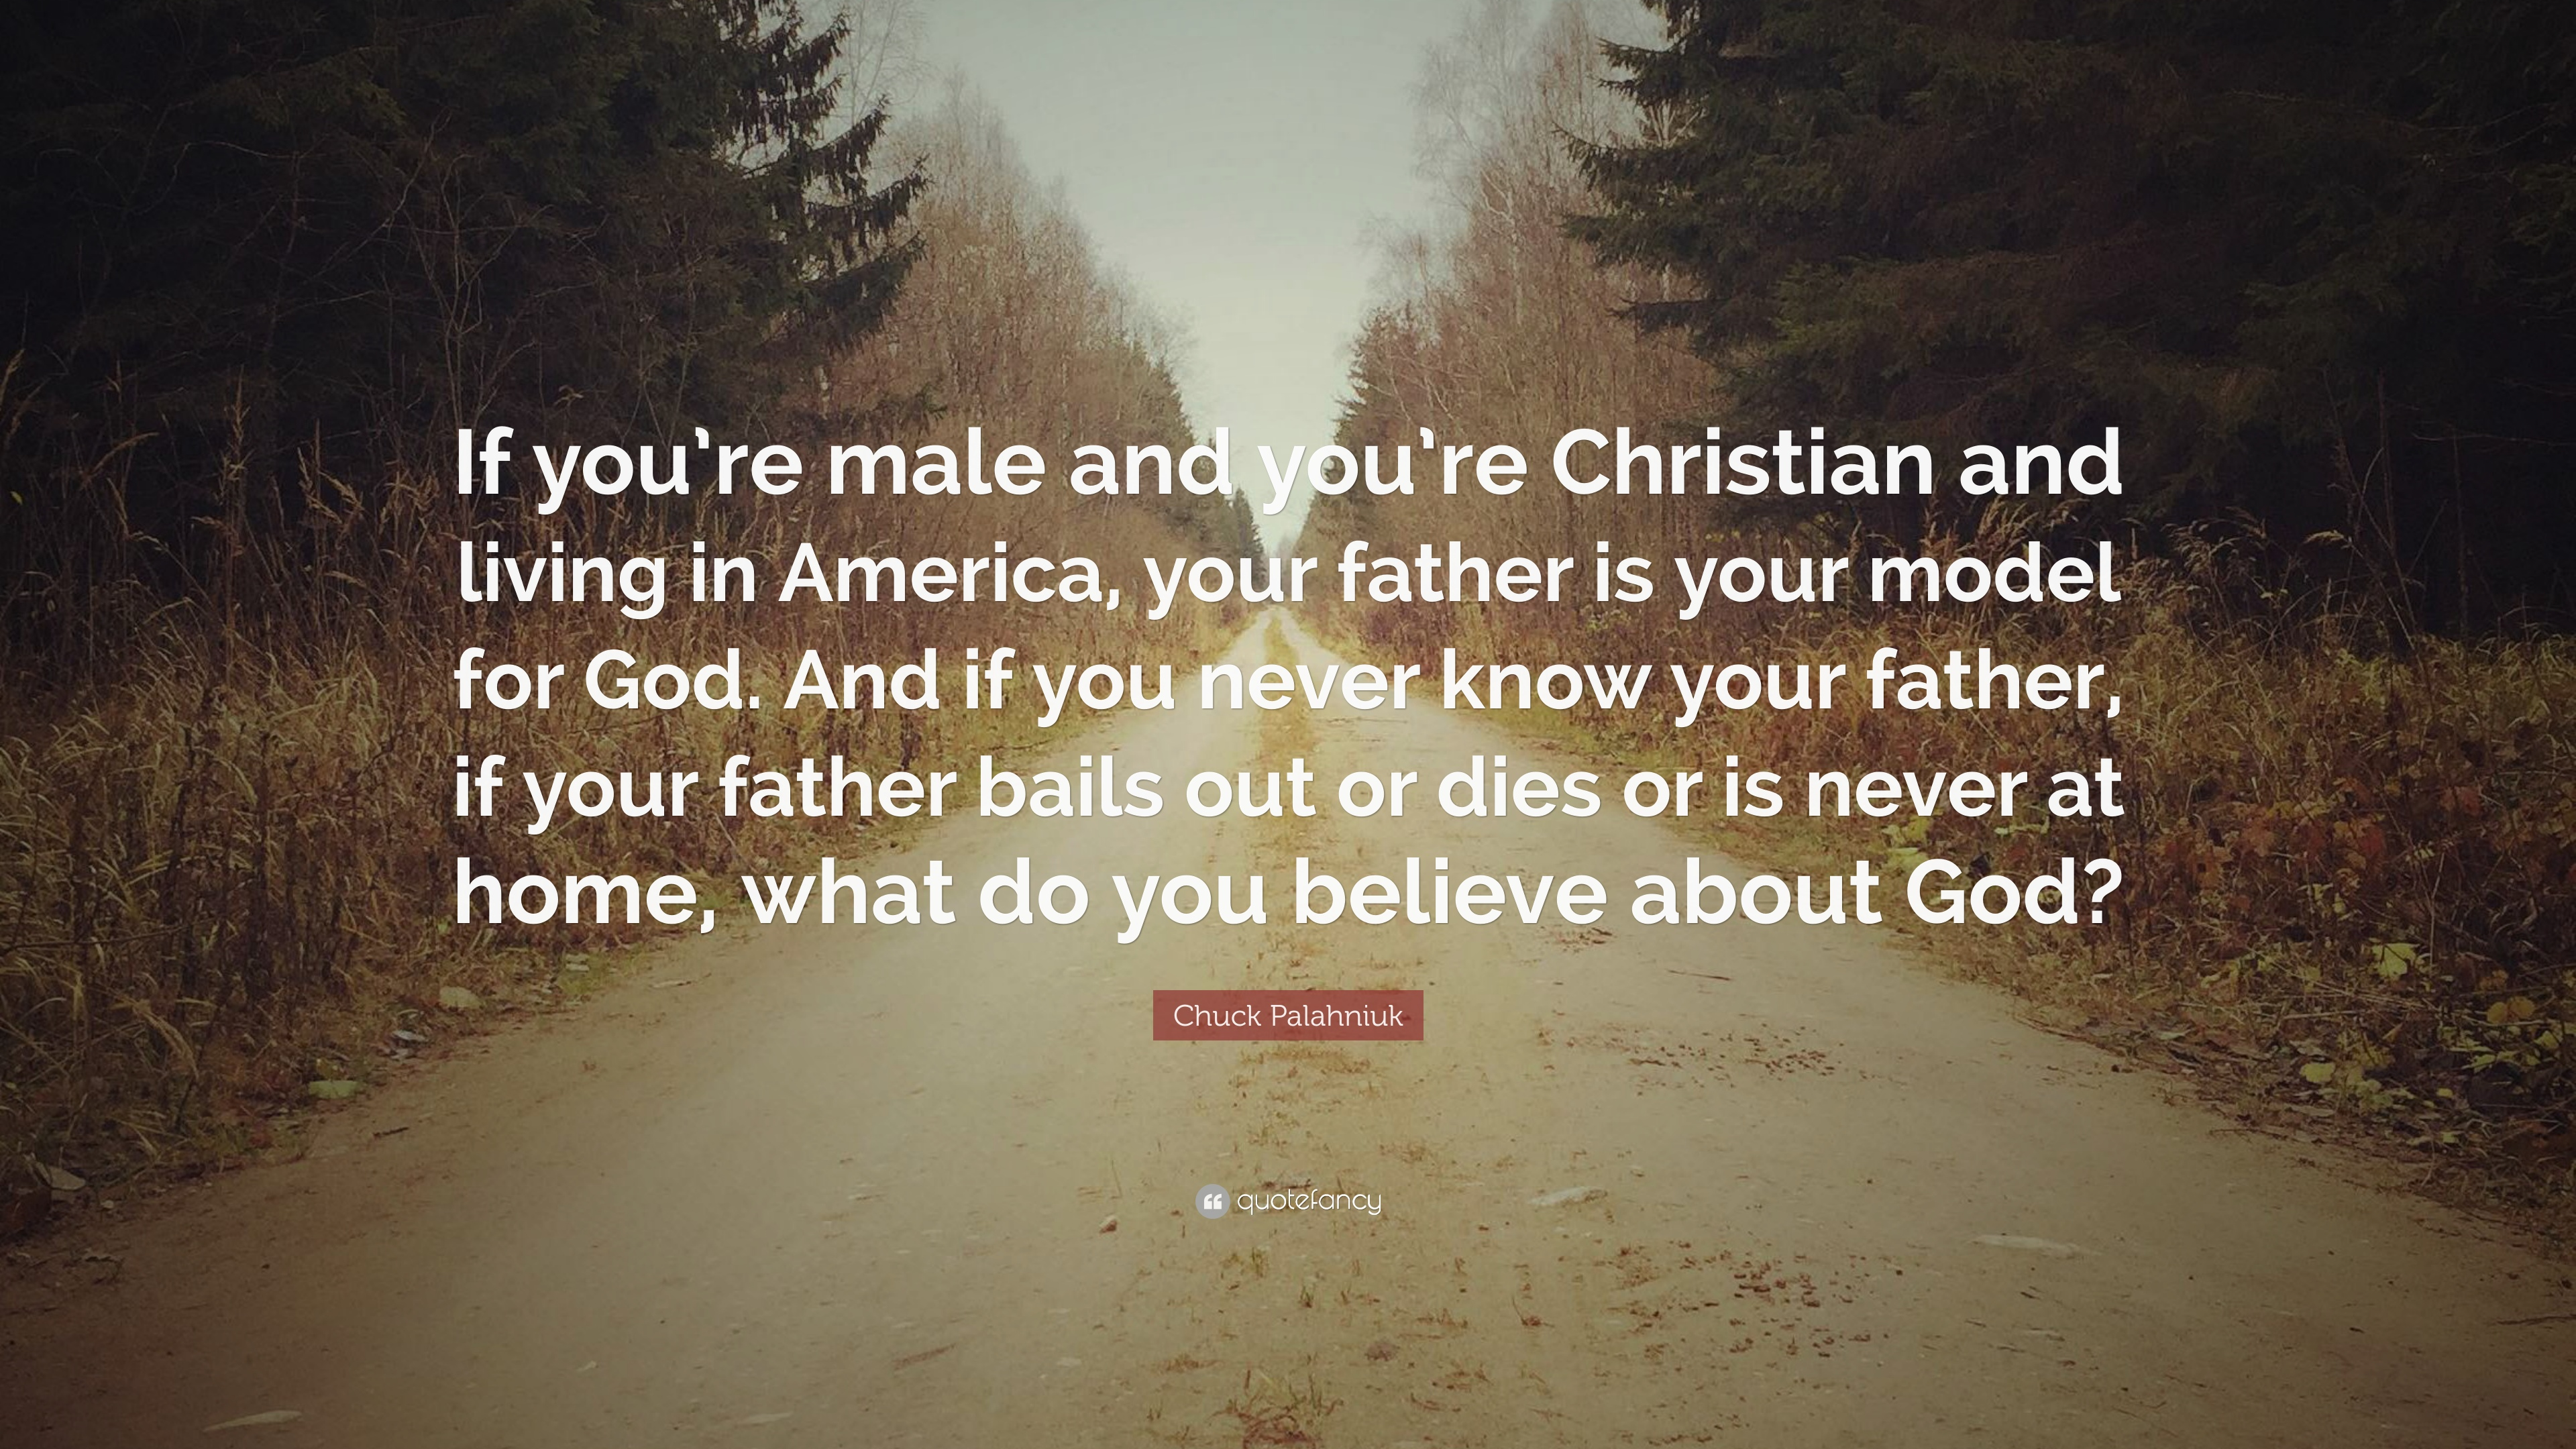 Do Christians believe God knows the future?